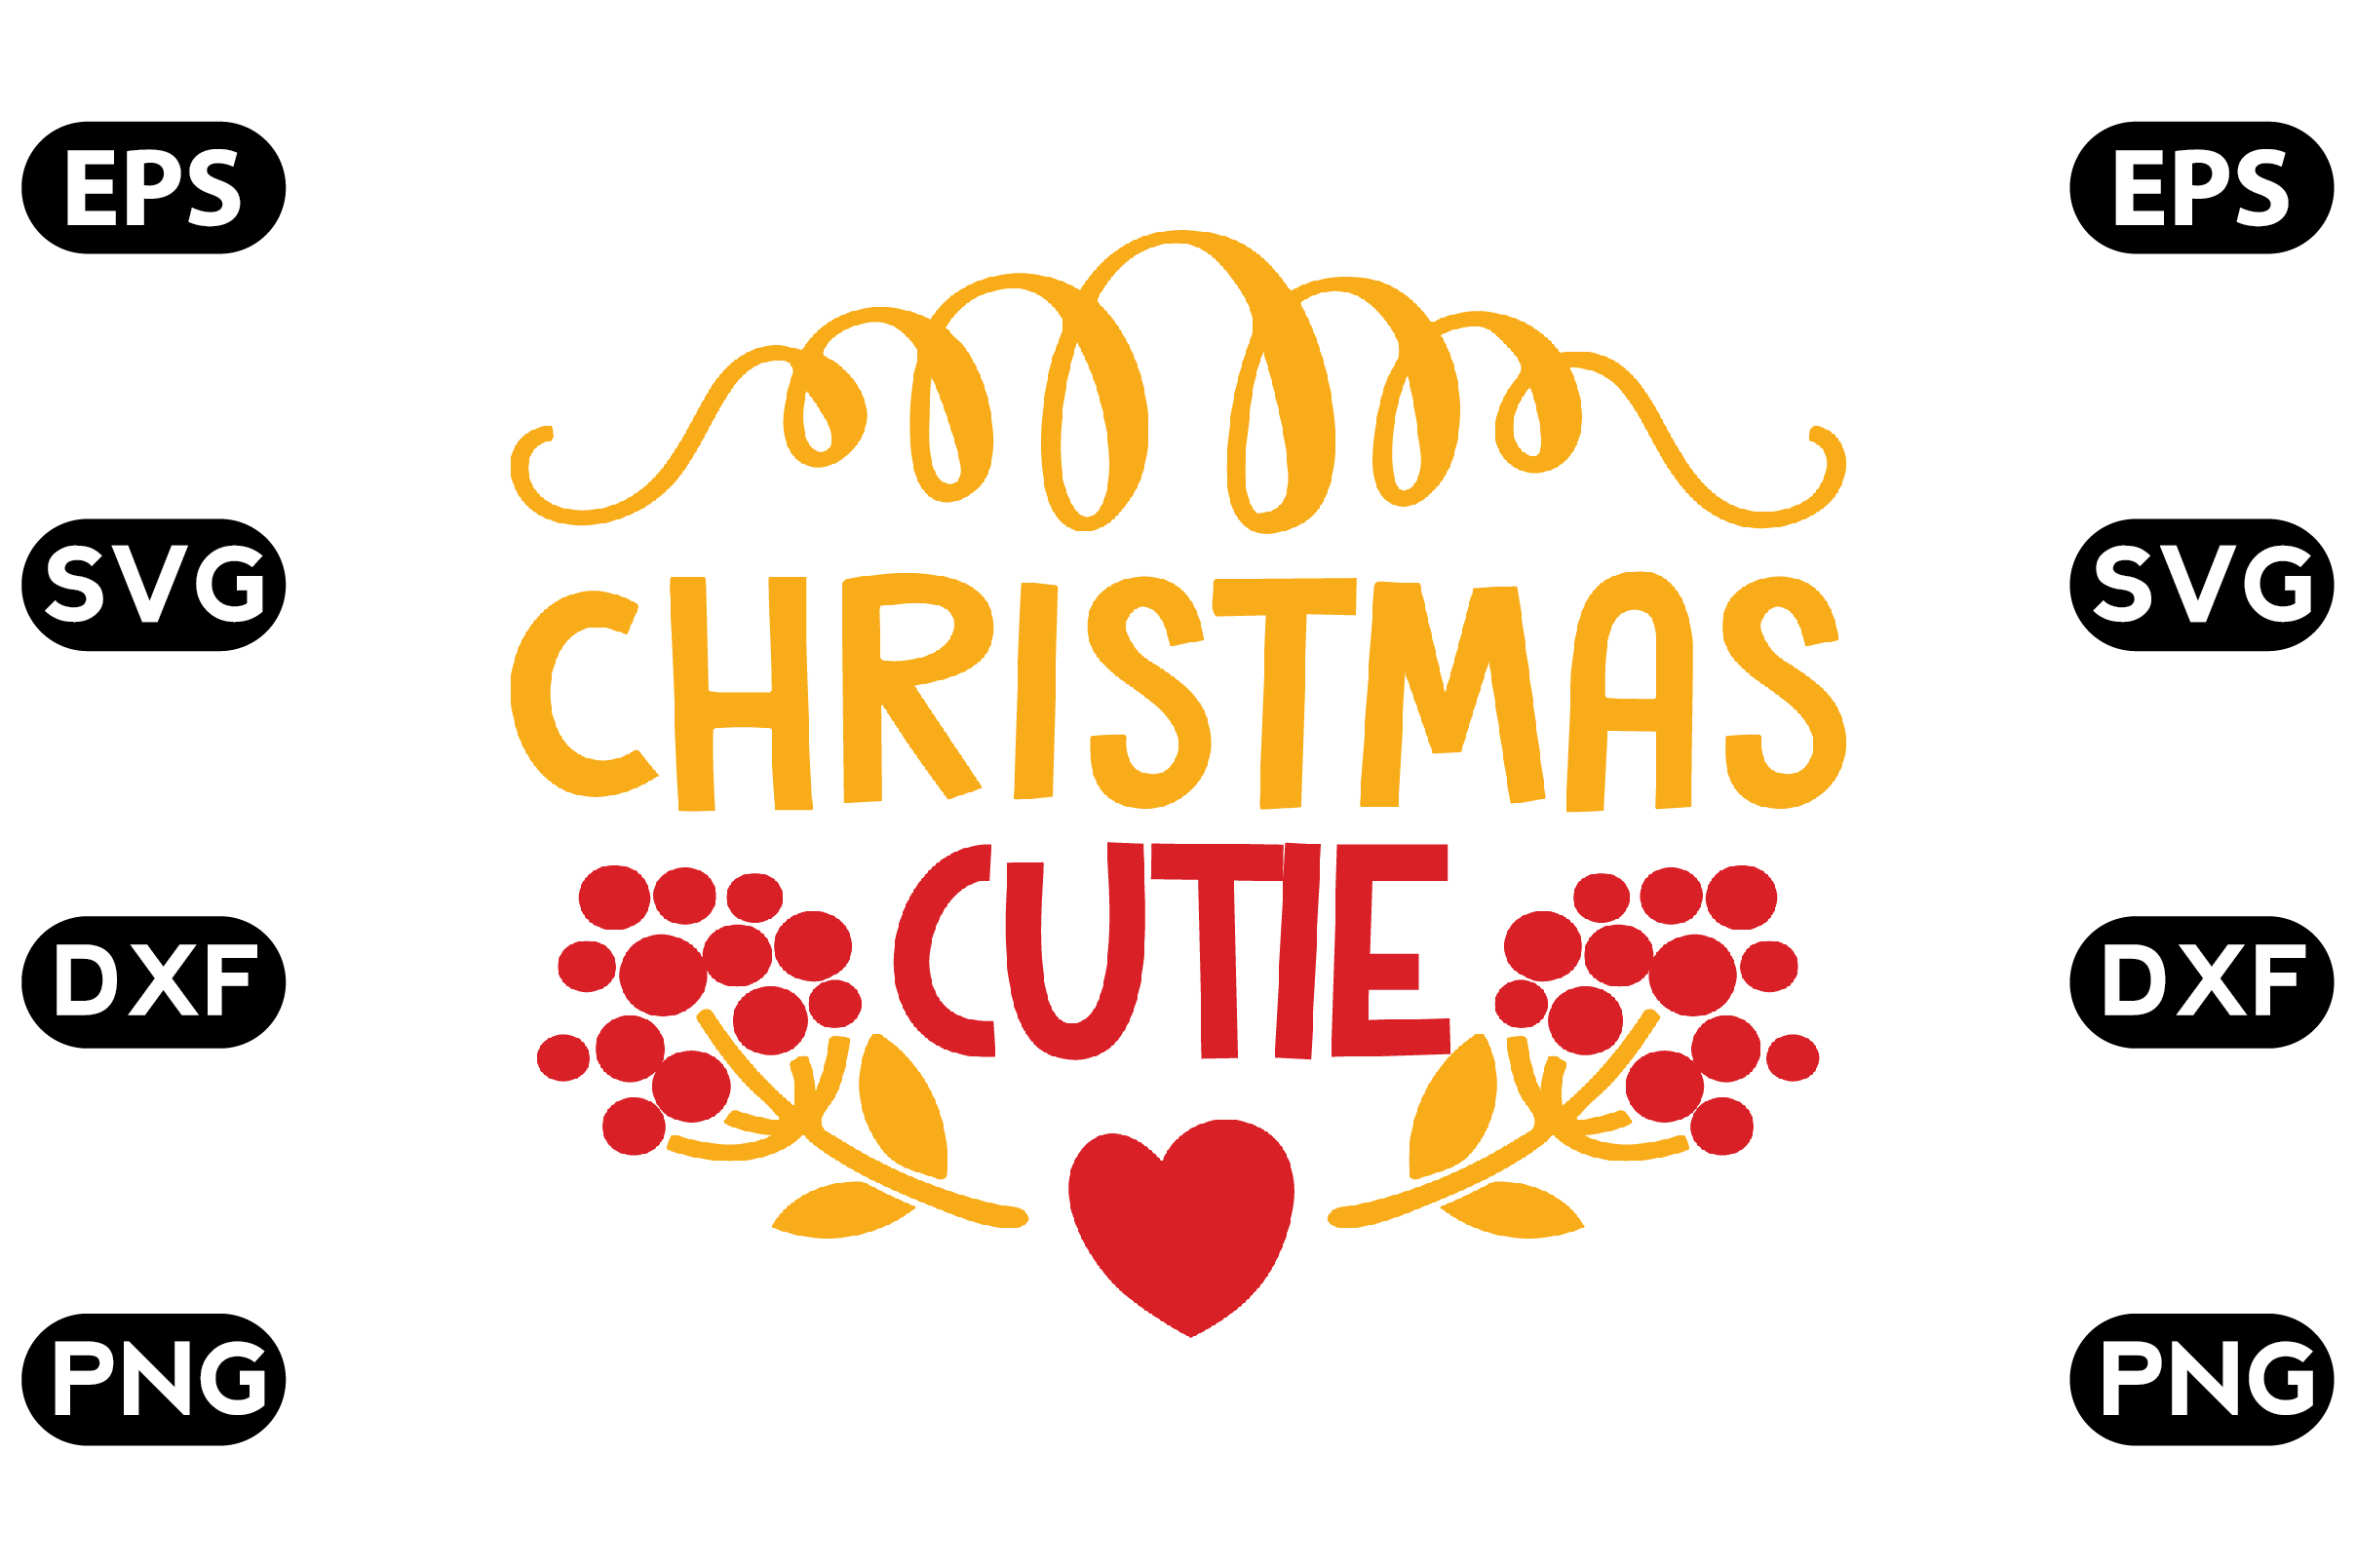 Download Free Christmas Cutie Graphic By Svg Store Creative Fabrica for Cricut Explore, Silhouette and other cutting machines.